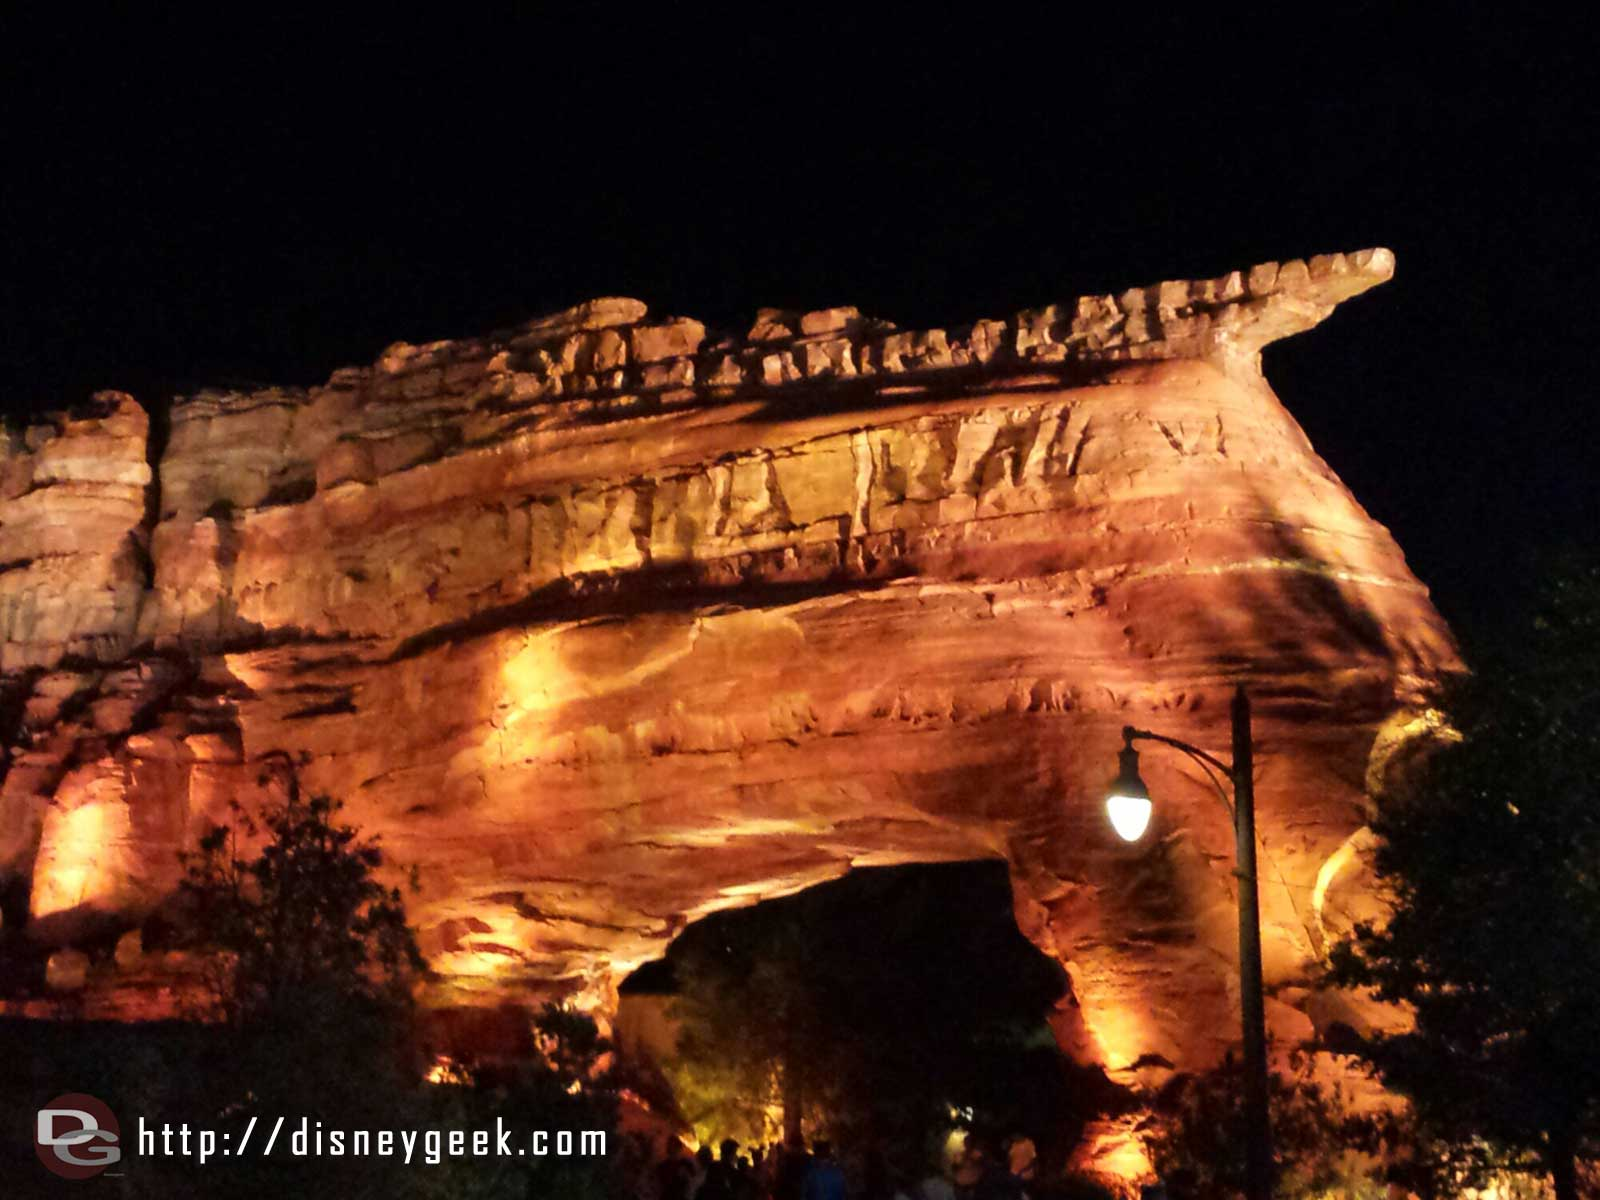 Random ornament valley picture as I am passing through #CarsLand